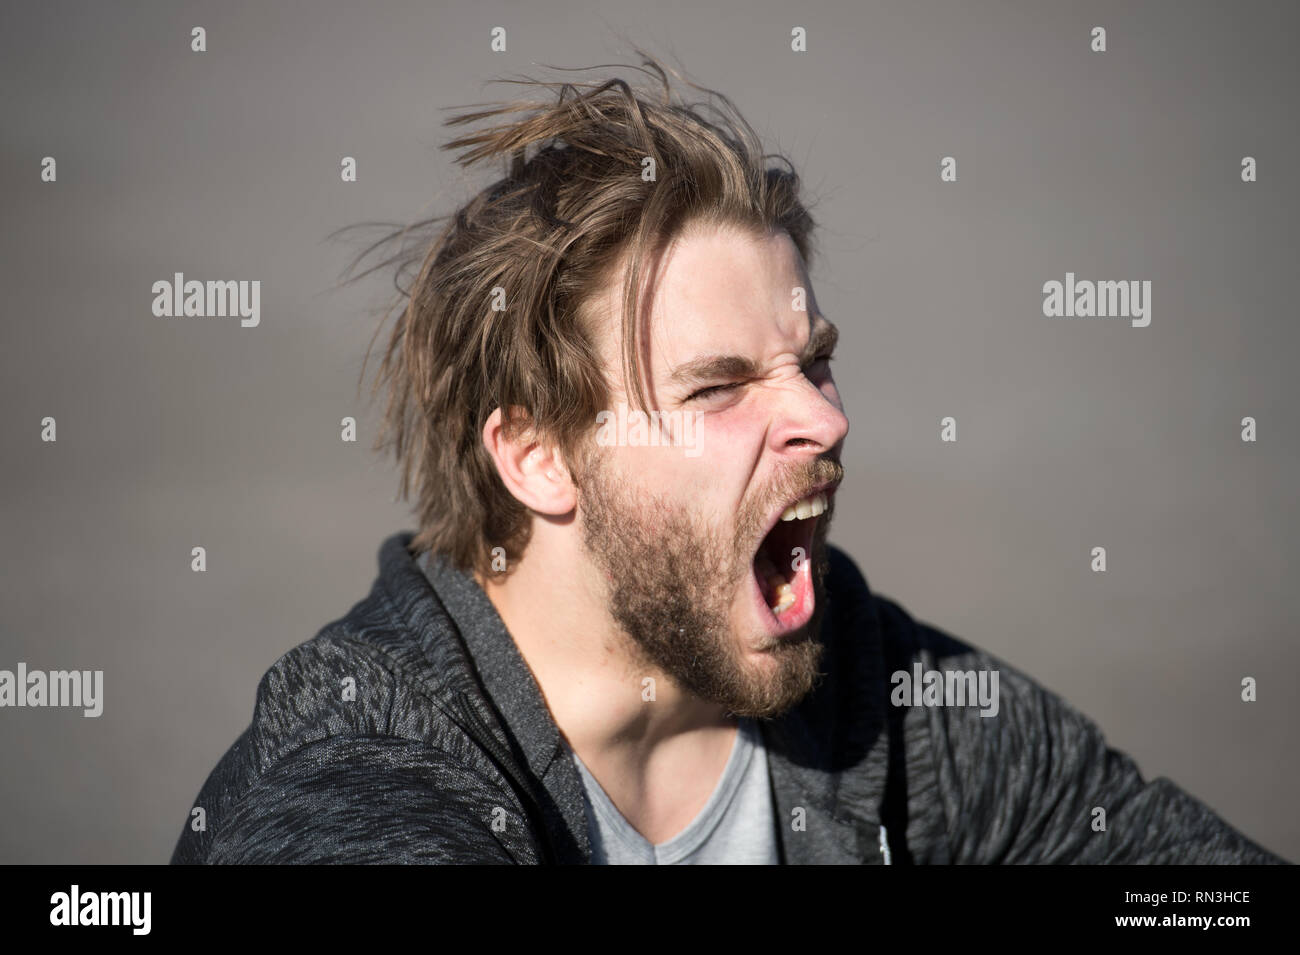 shouting or yawning handsome man or bearded guy with beard and stylish hair sunny outdoor on grey background - Stock Image